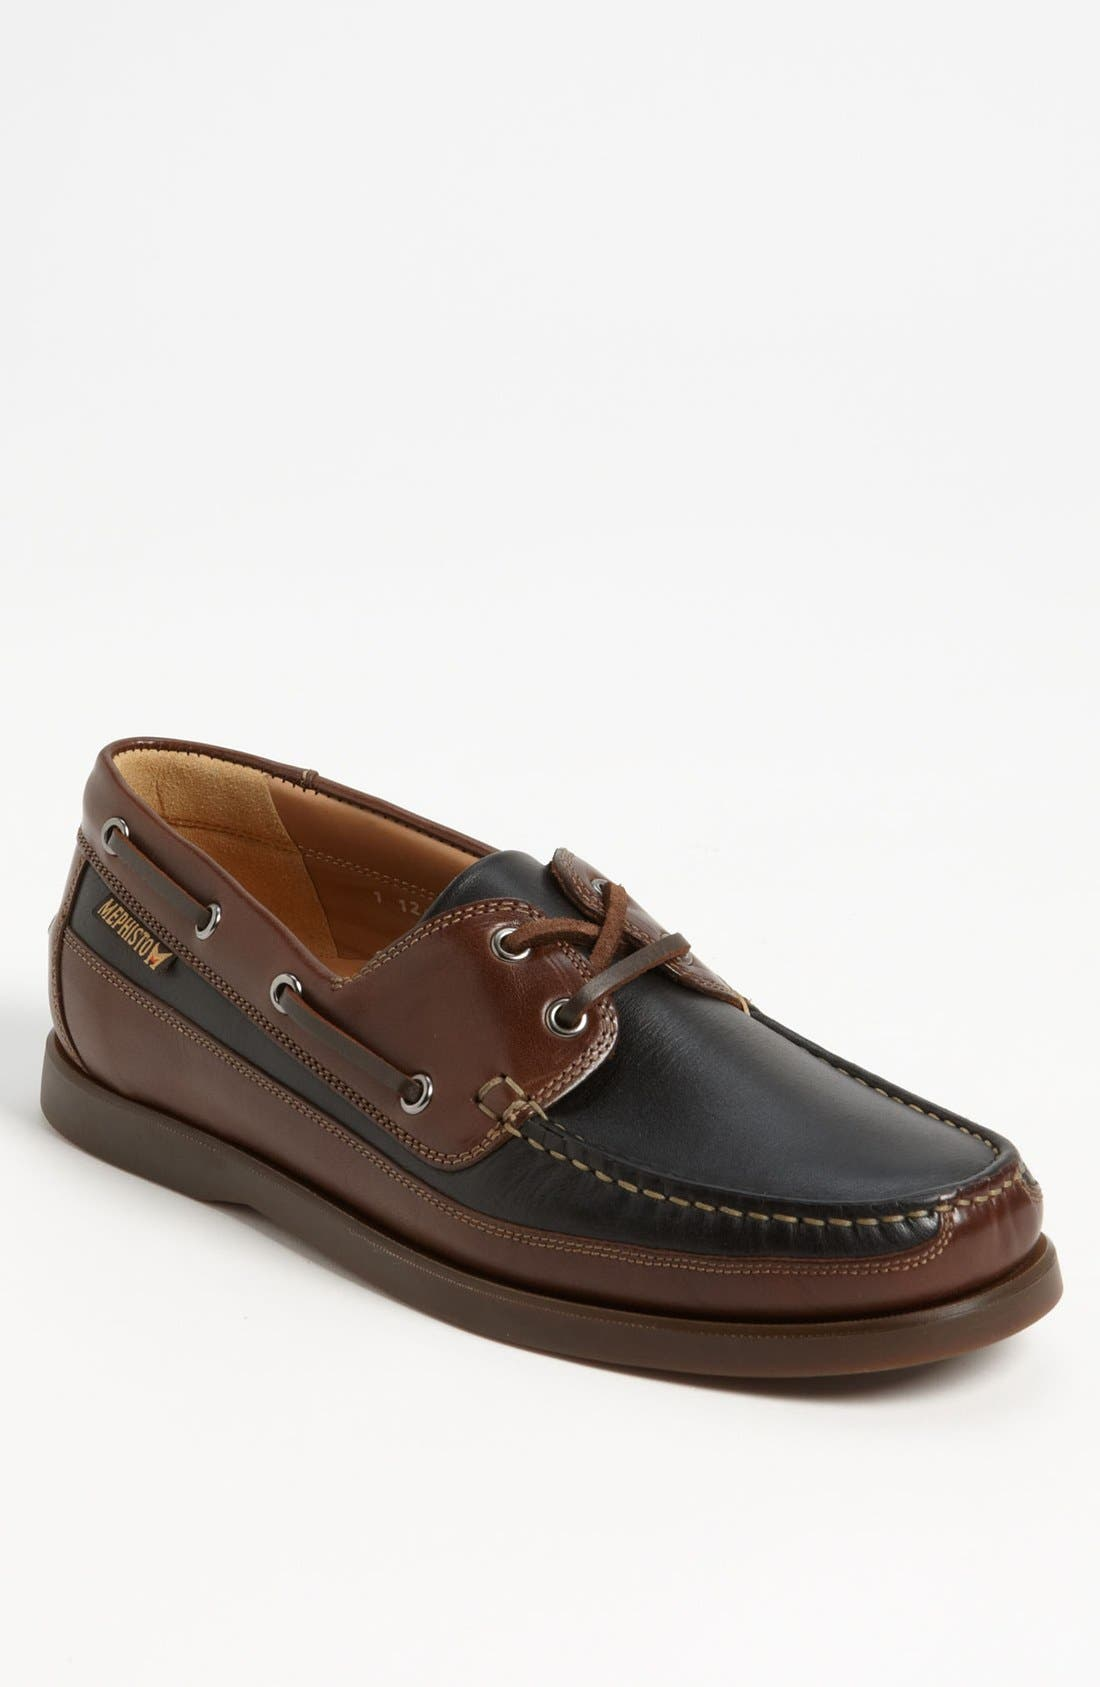 mephisto boating water resistant leather boat shoe